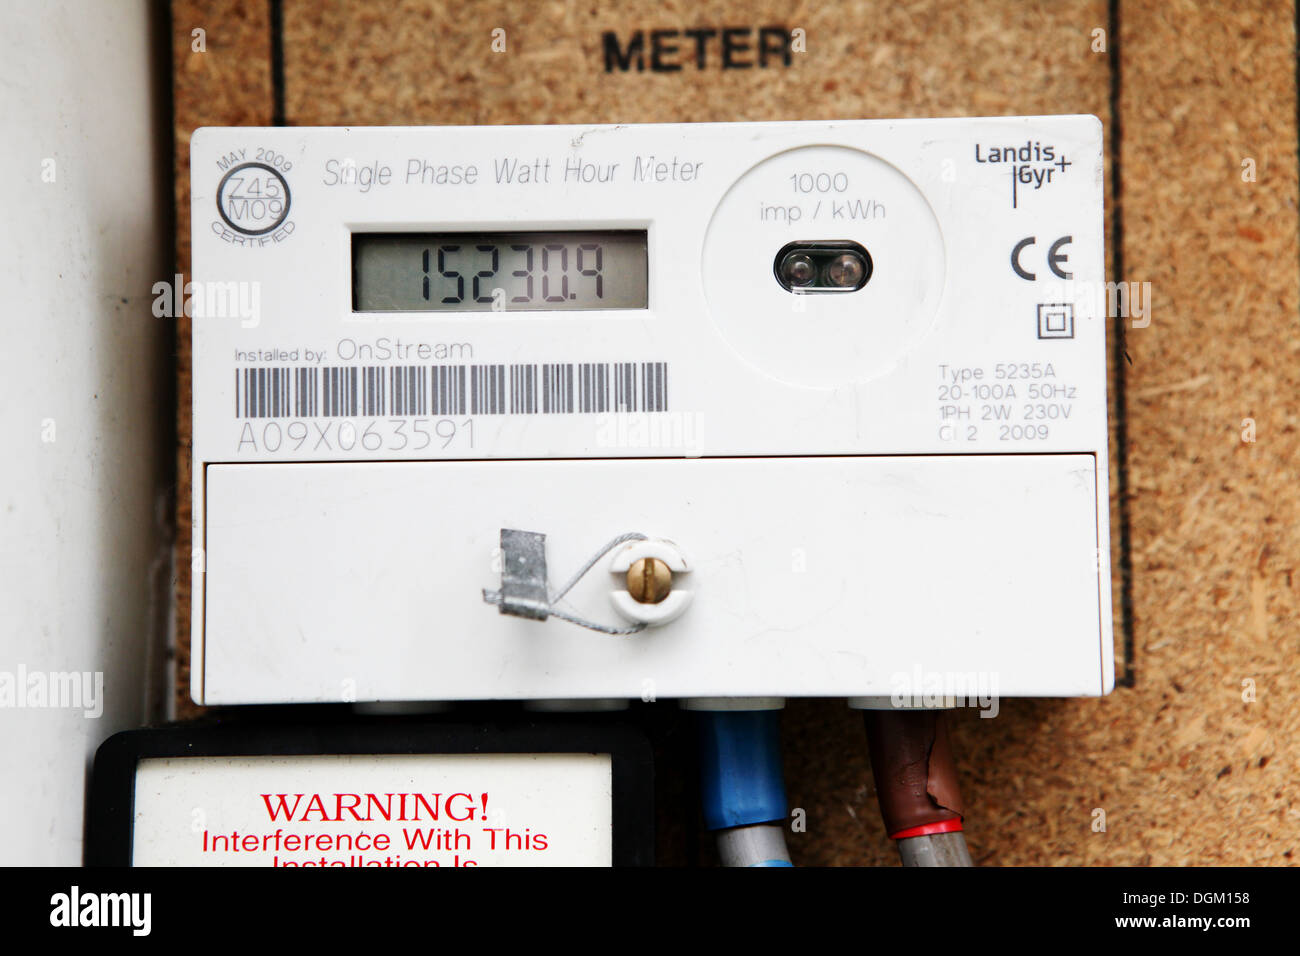 domestic electricity meter uk stockfotos domestic electricity meter uk bilder alamy. Black Bedroom Furniture Sets. Home Design Ideas